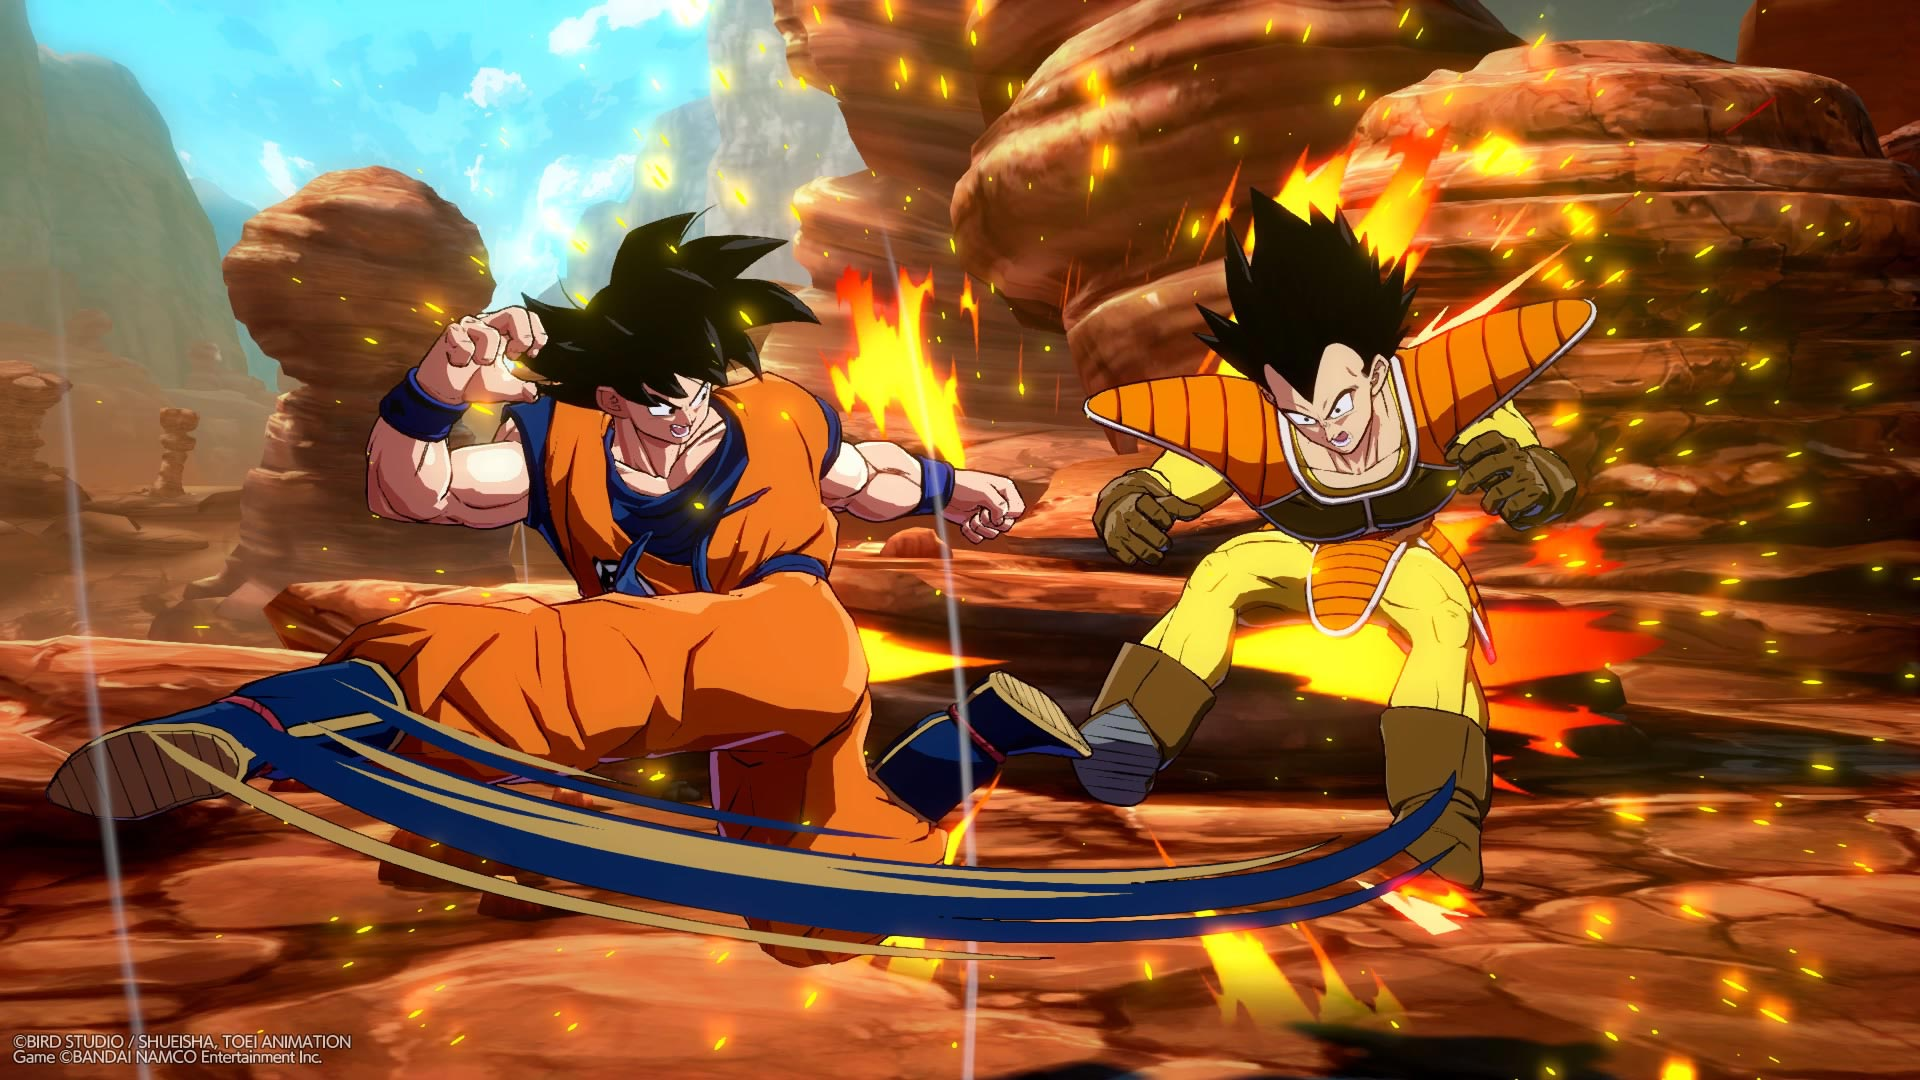 Base Form Goku and Base Form Vegeta now available in Dragon Ball FighterZ 4 out of 12 image gallery